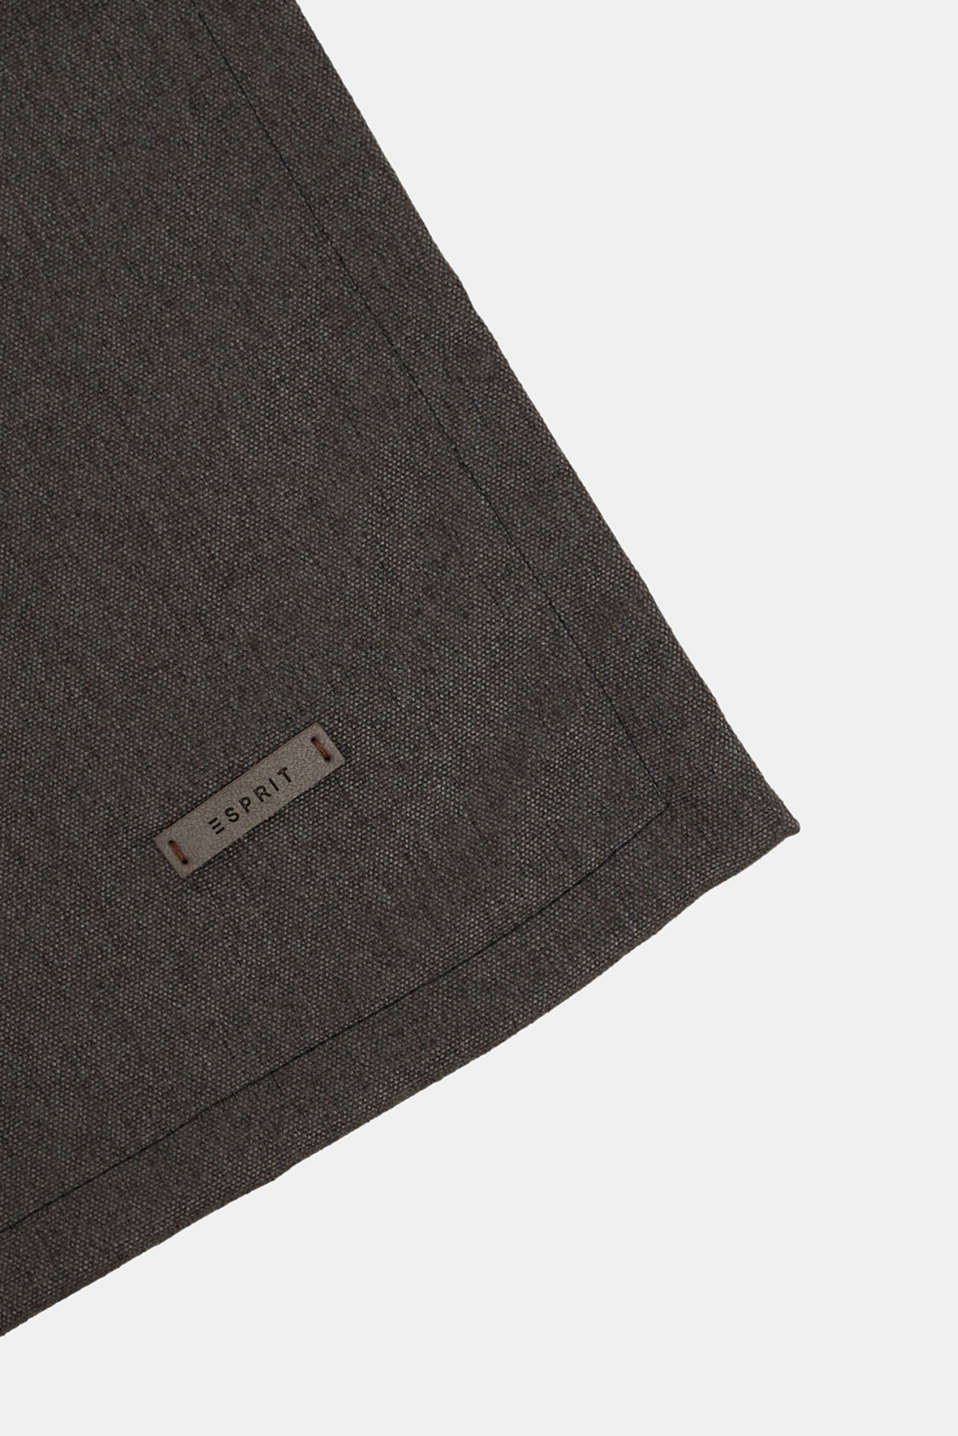 Table runner in melange woven fabric, DARK GREY, detail image number 1